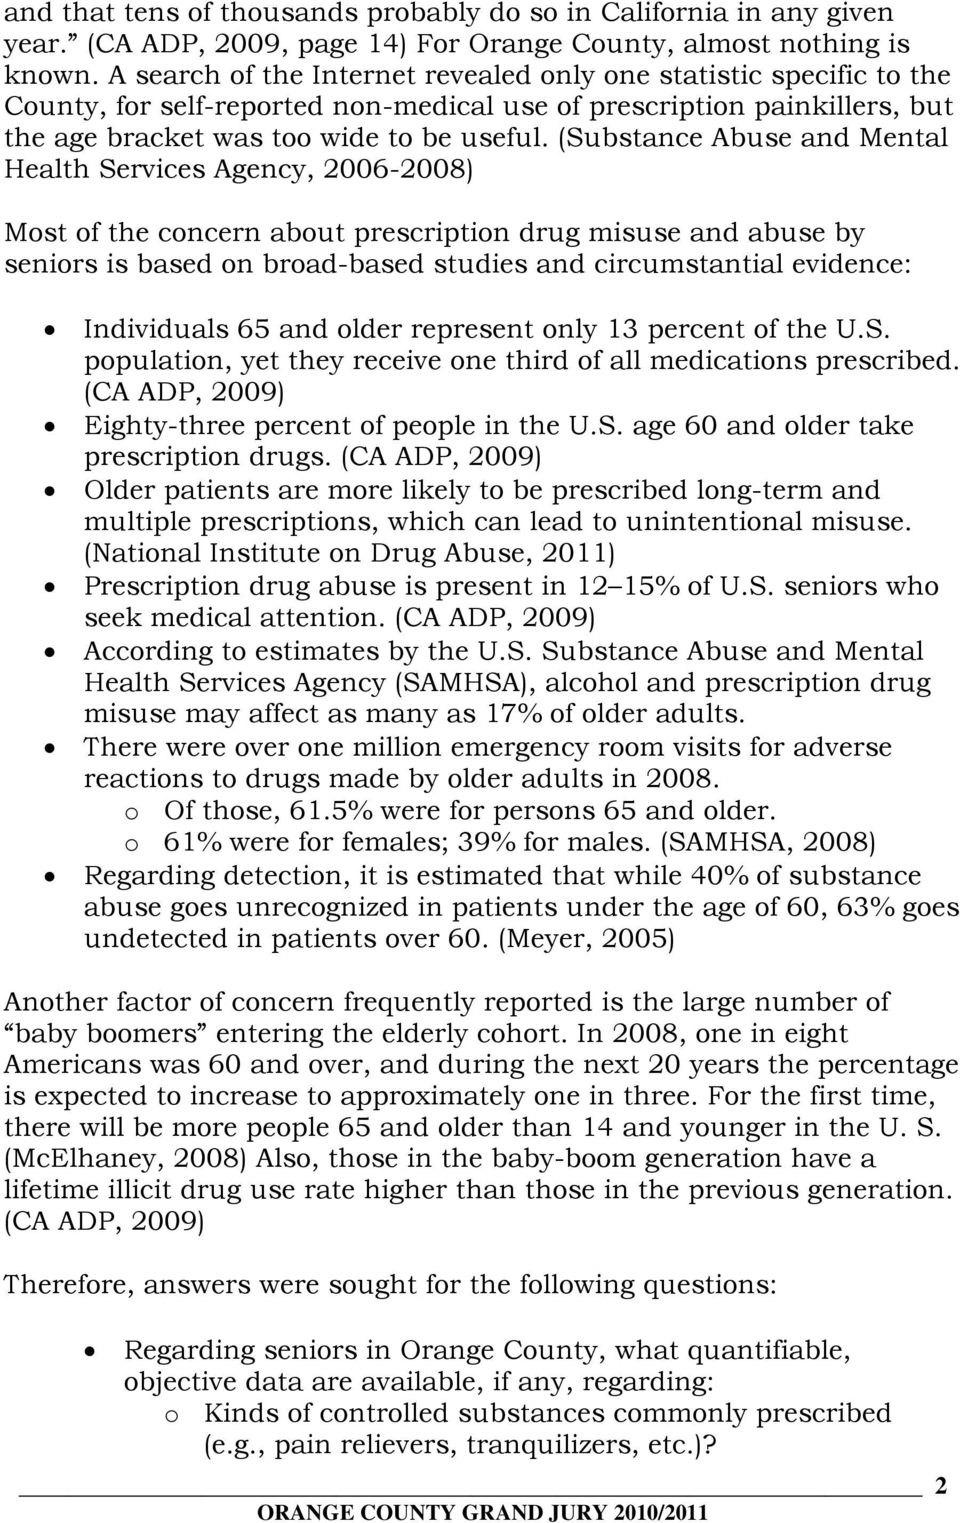 (Substance Abuse and Mental Health Services Agency, 2006-2008) Most of the concern about prescription drug misuse and abuse by seniors is based on broad-based studies and circumstantial evidence: